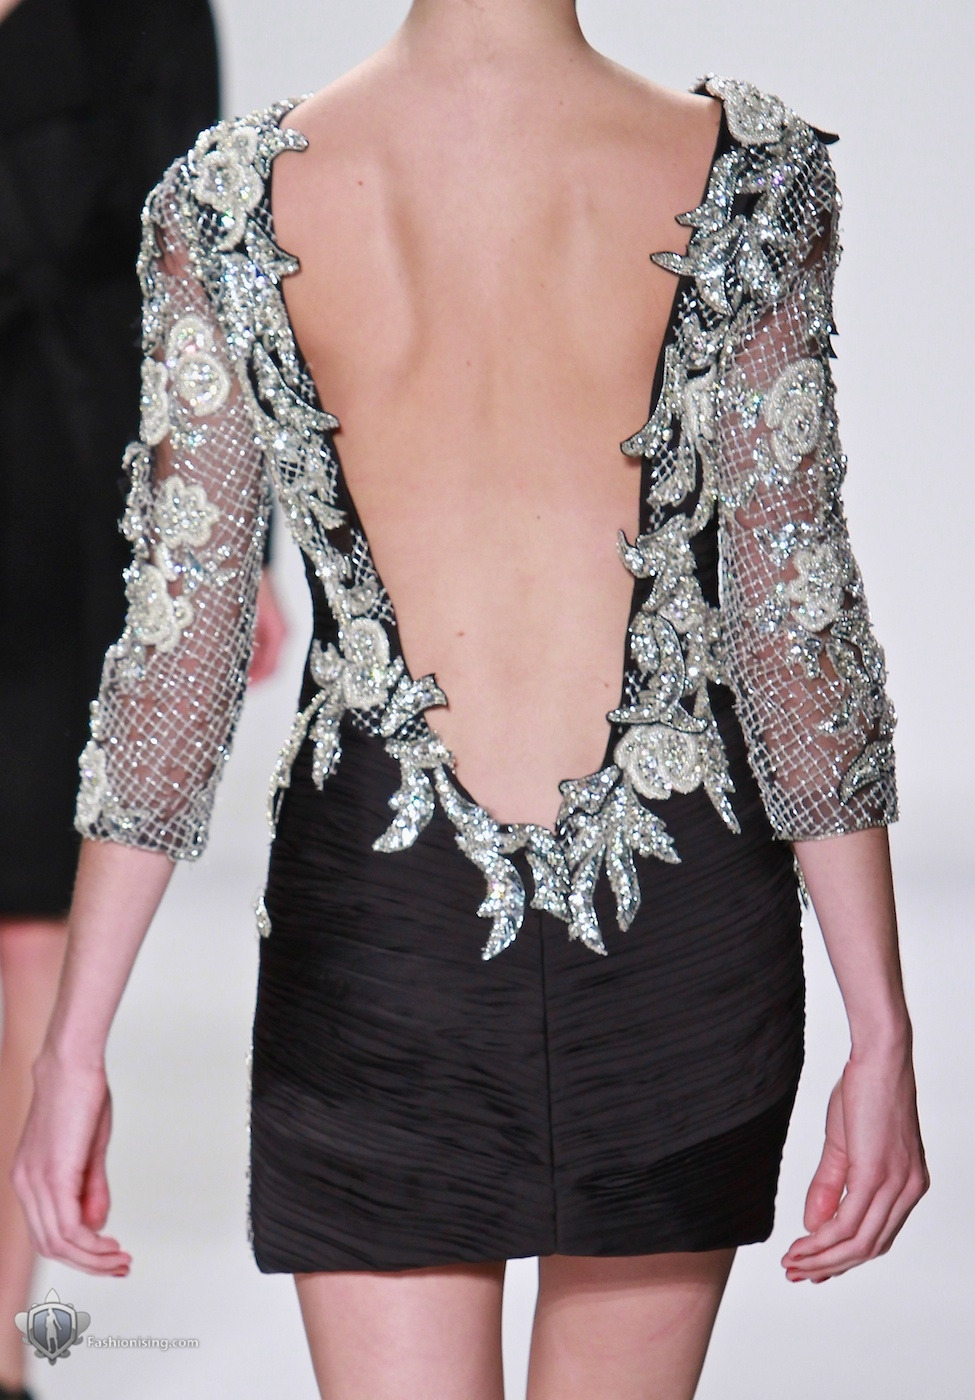 velvetrunway:  Farah Angsana f/w 11 posted by fashiondestruction